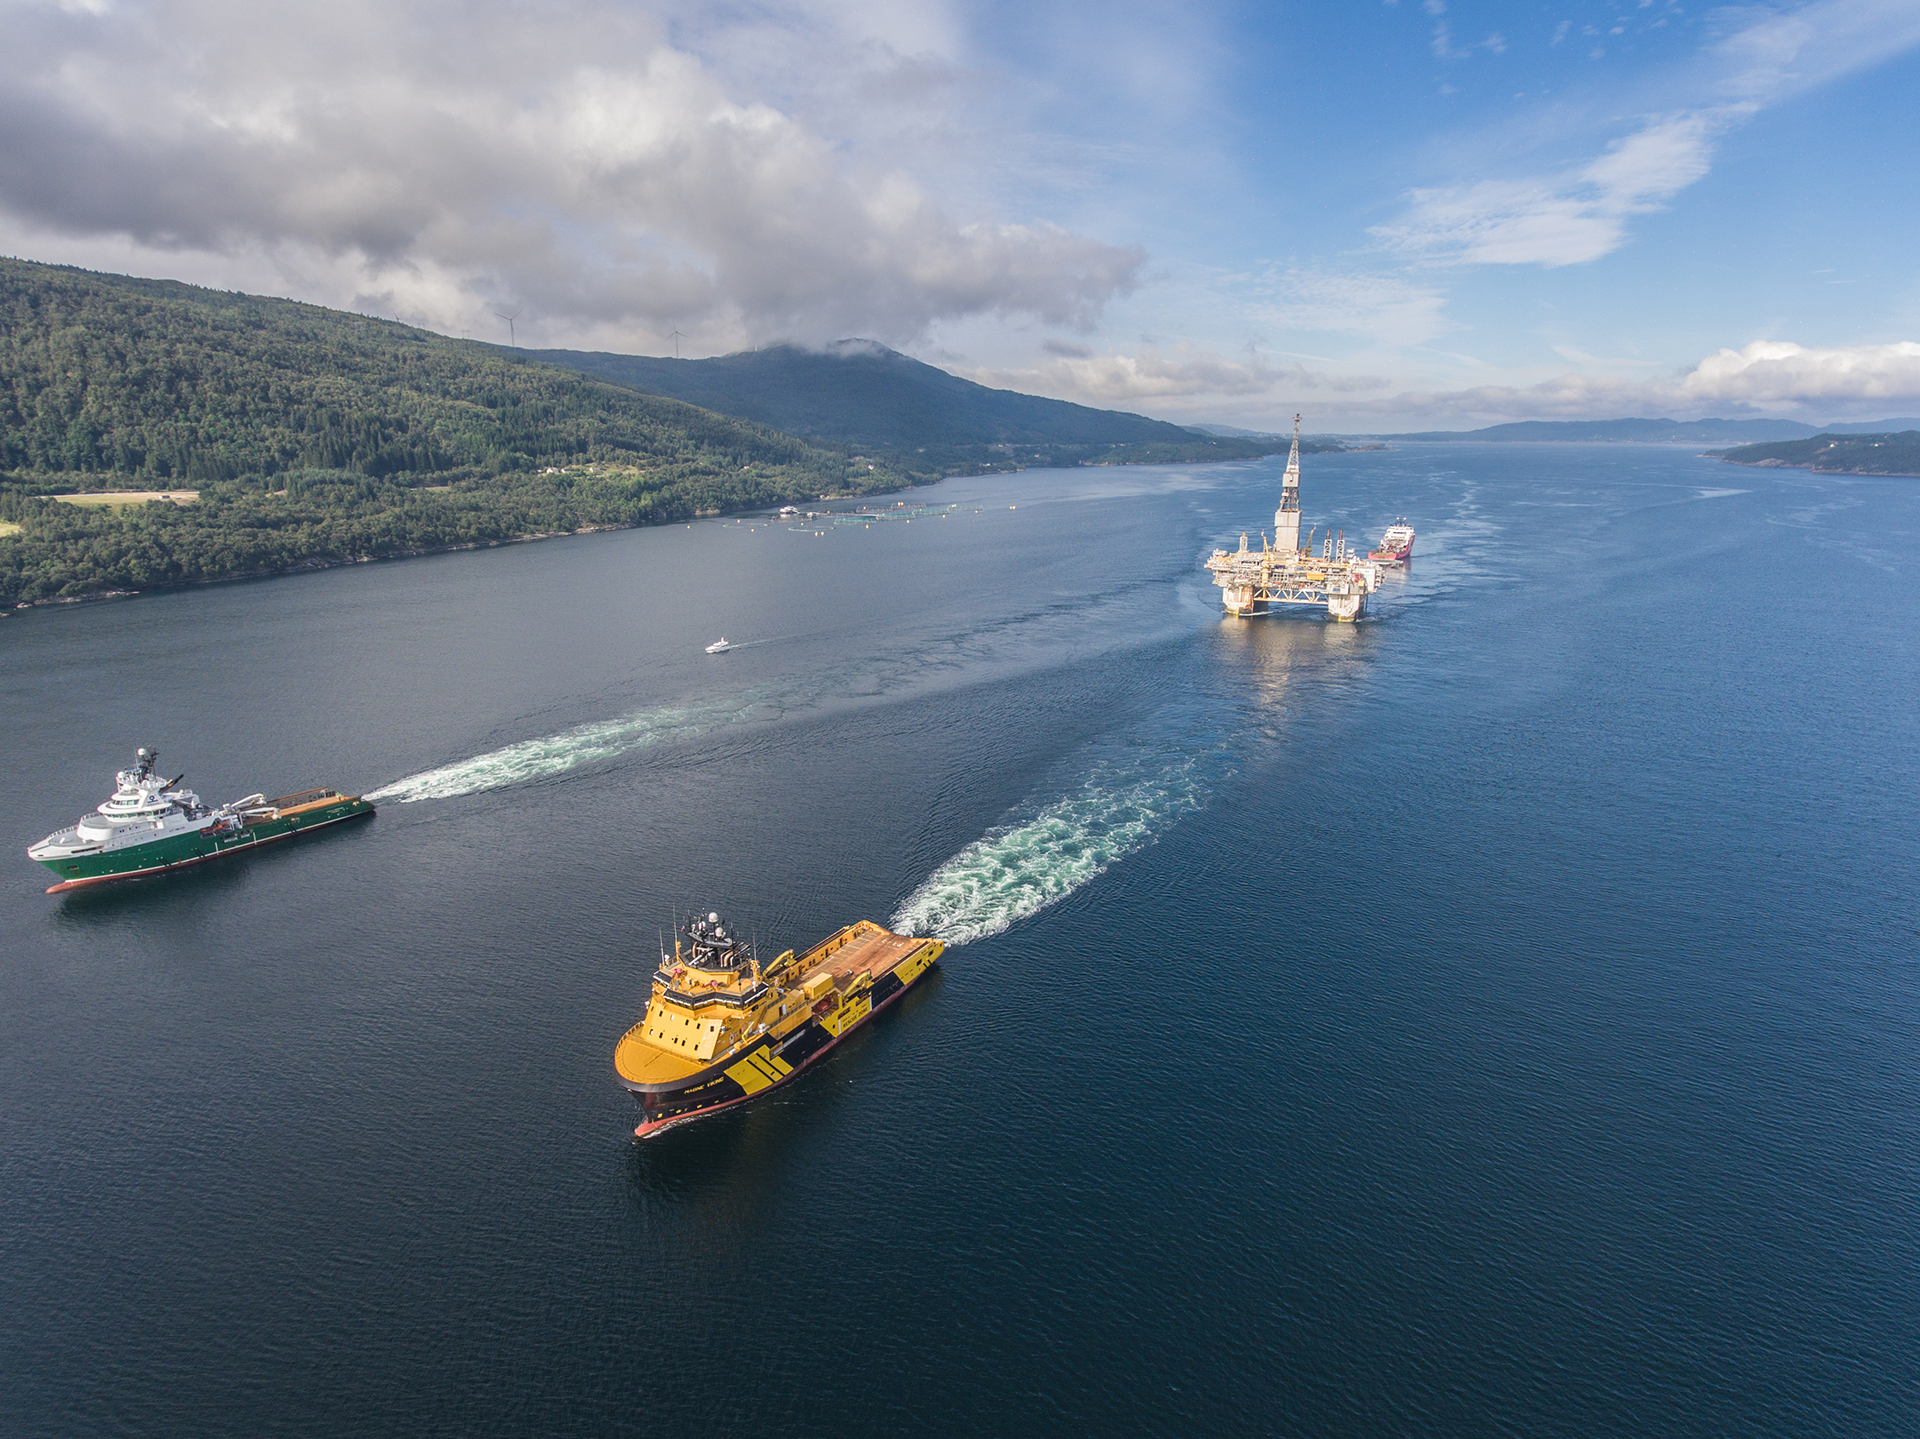 Production on Njord was halted in 2016 and the facilities were brought to shore for upgrades after cracks were discovered in the structure. Production will resume in 2020. (Photo: Statoil).